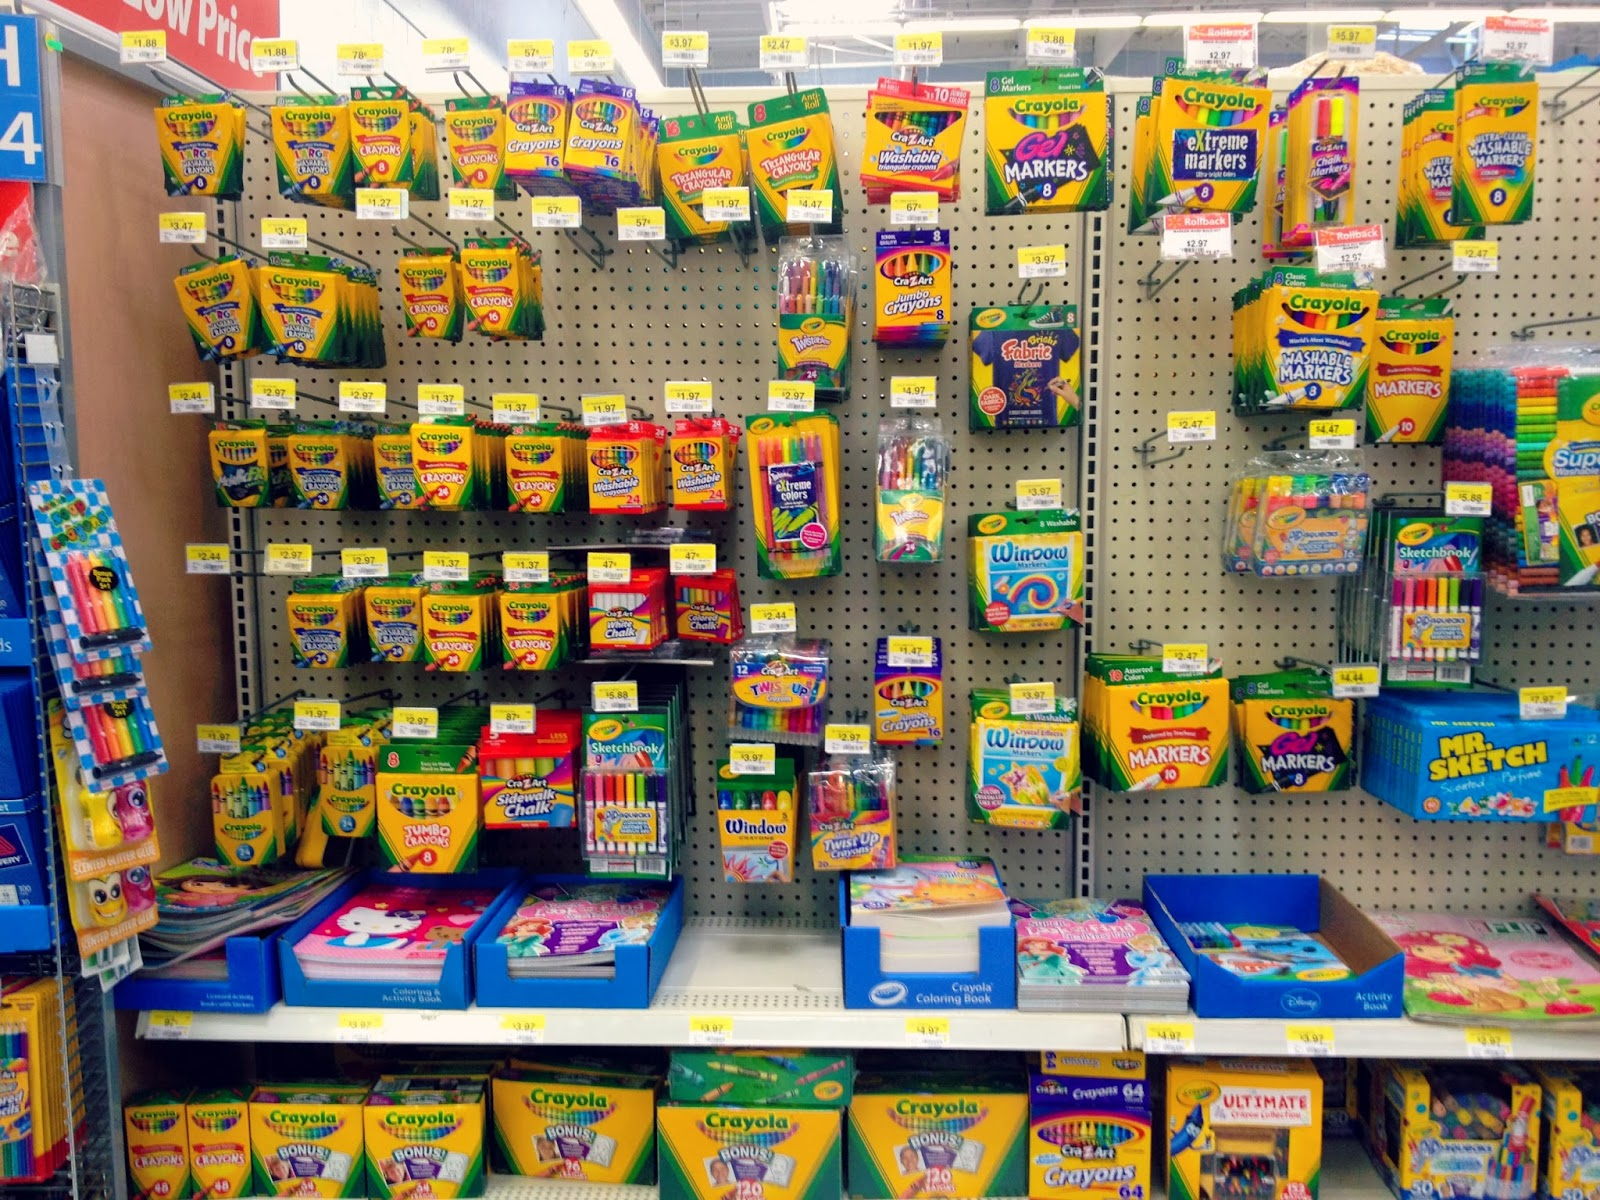 Walmart Crayola display